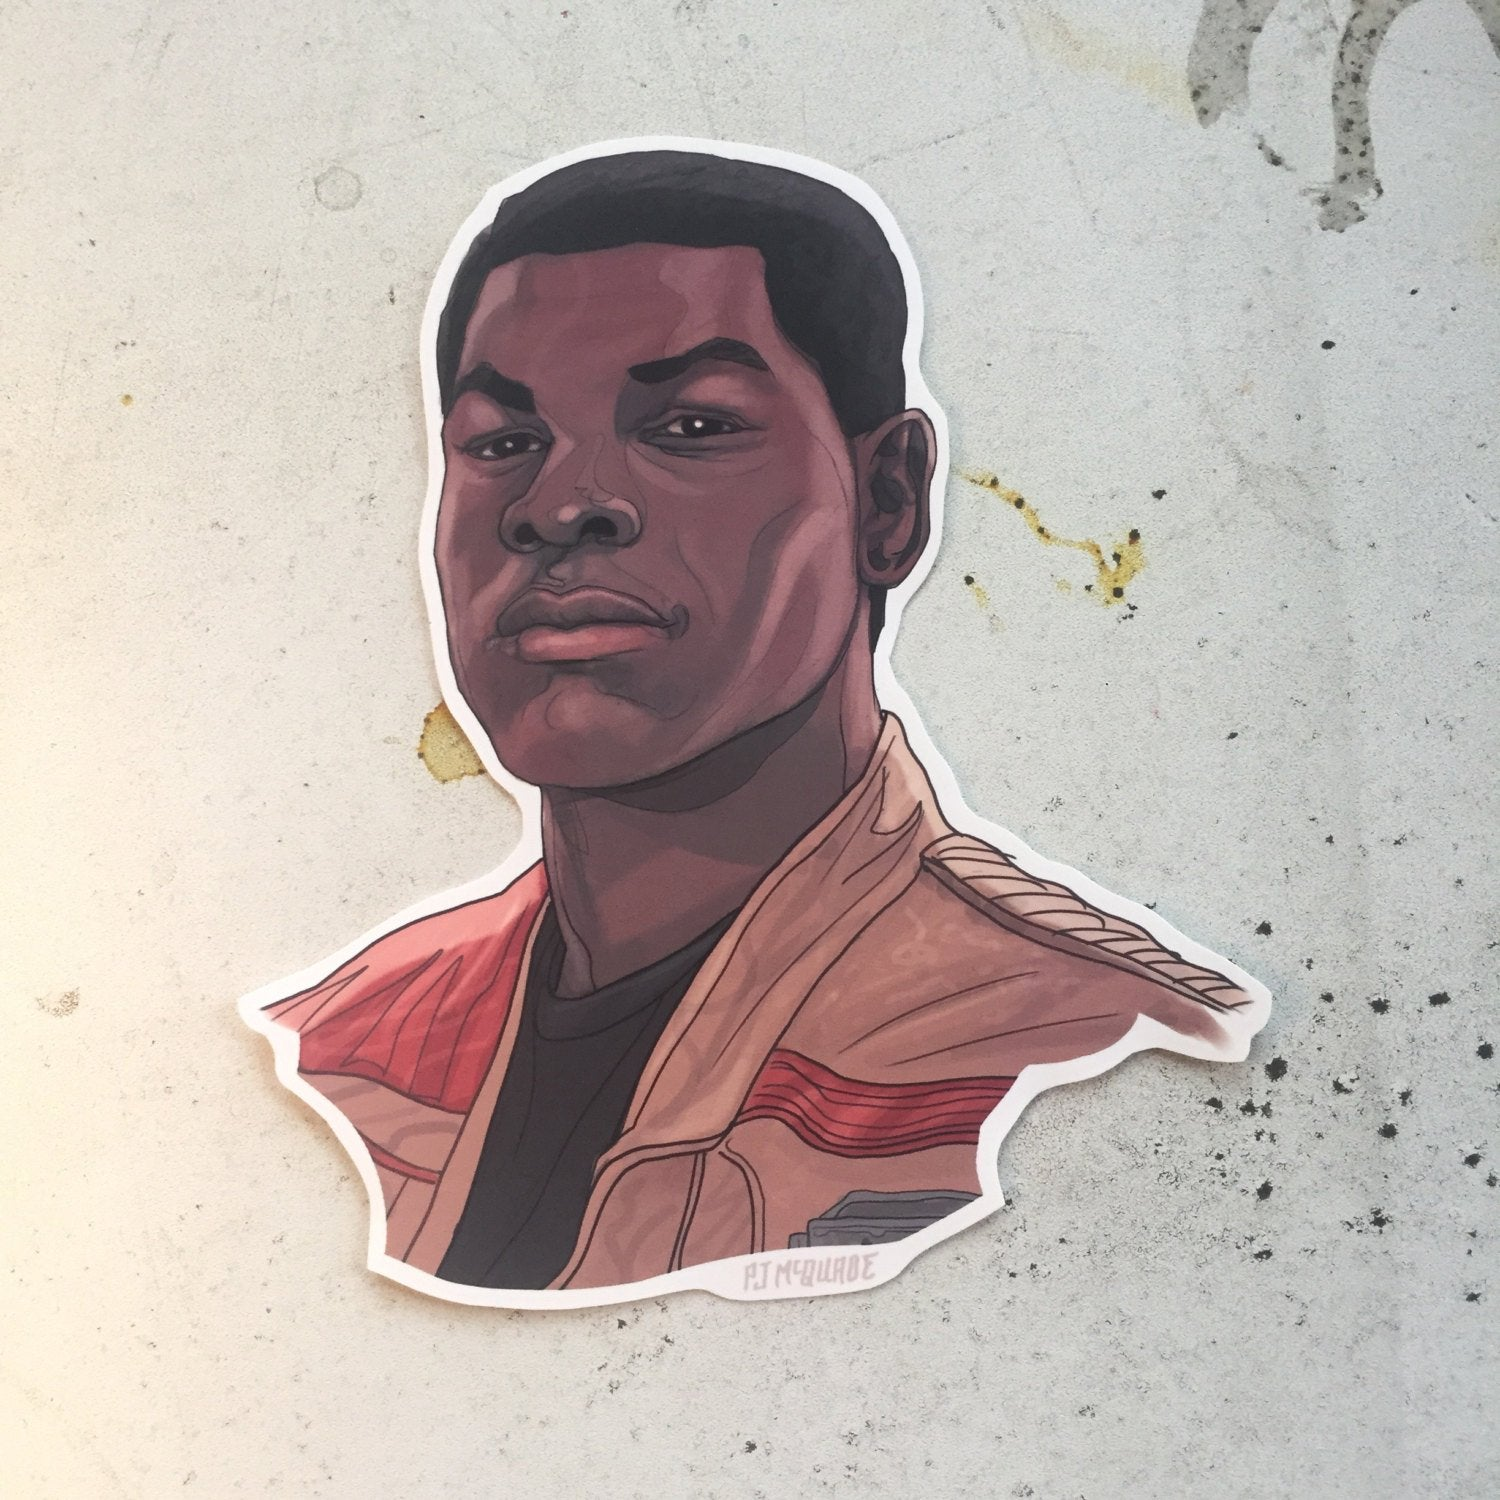 Finn STAR WARS STICKER!